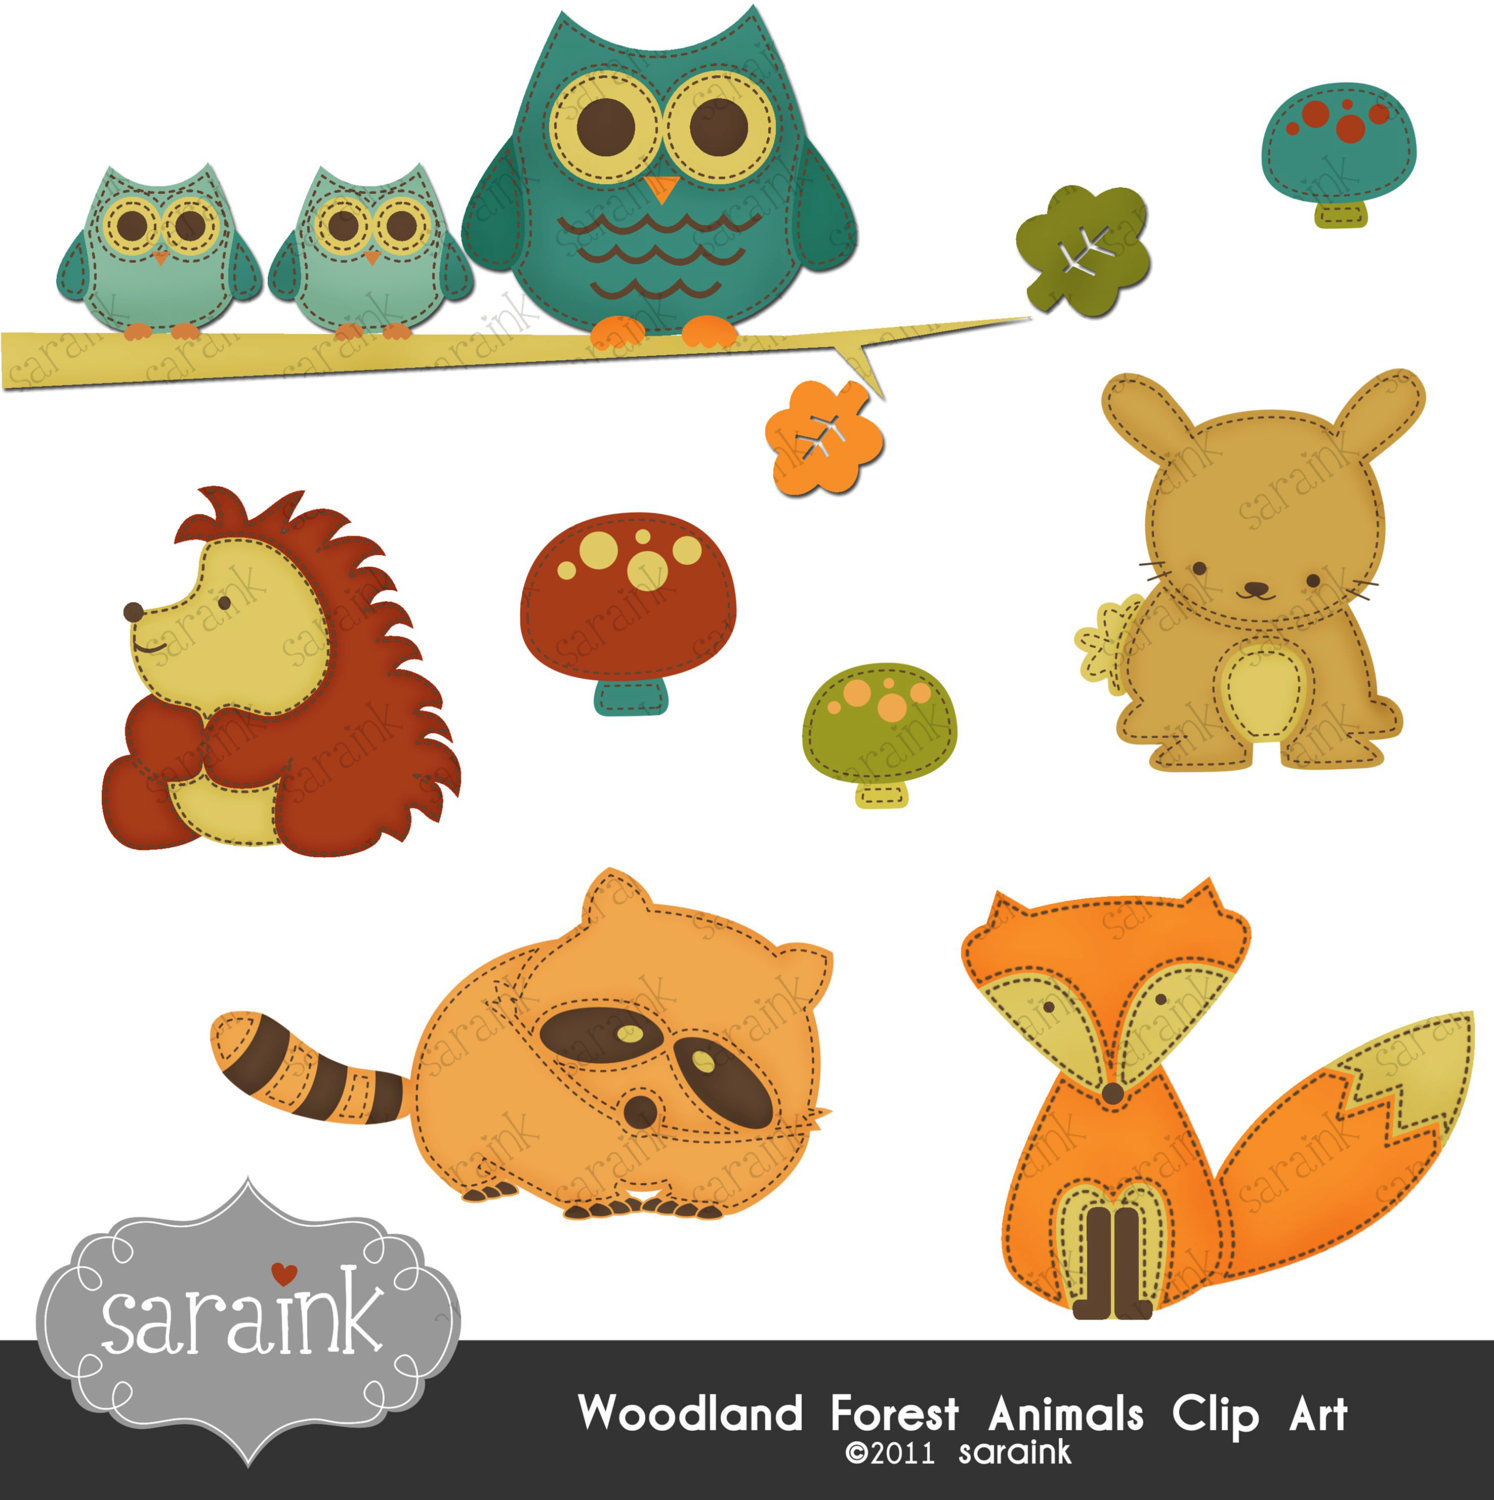 Hedgehog clipart forest animal Commercial Use Cute for Animals